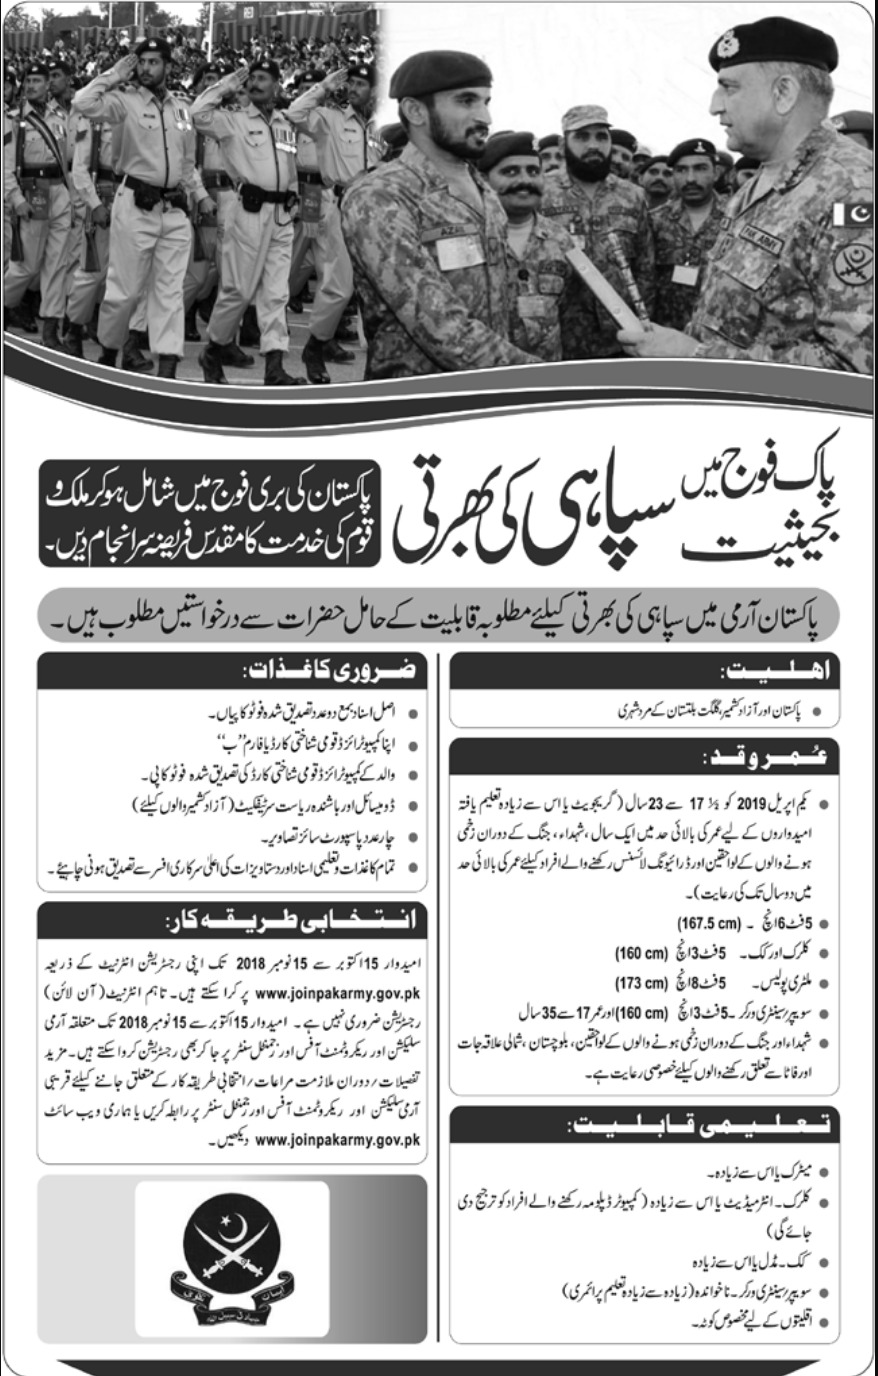 Join Pakistan Army as Soldier 2018